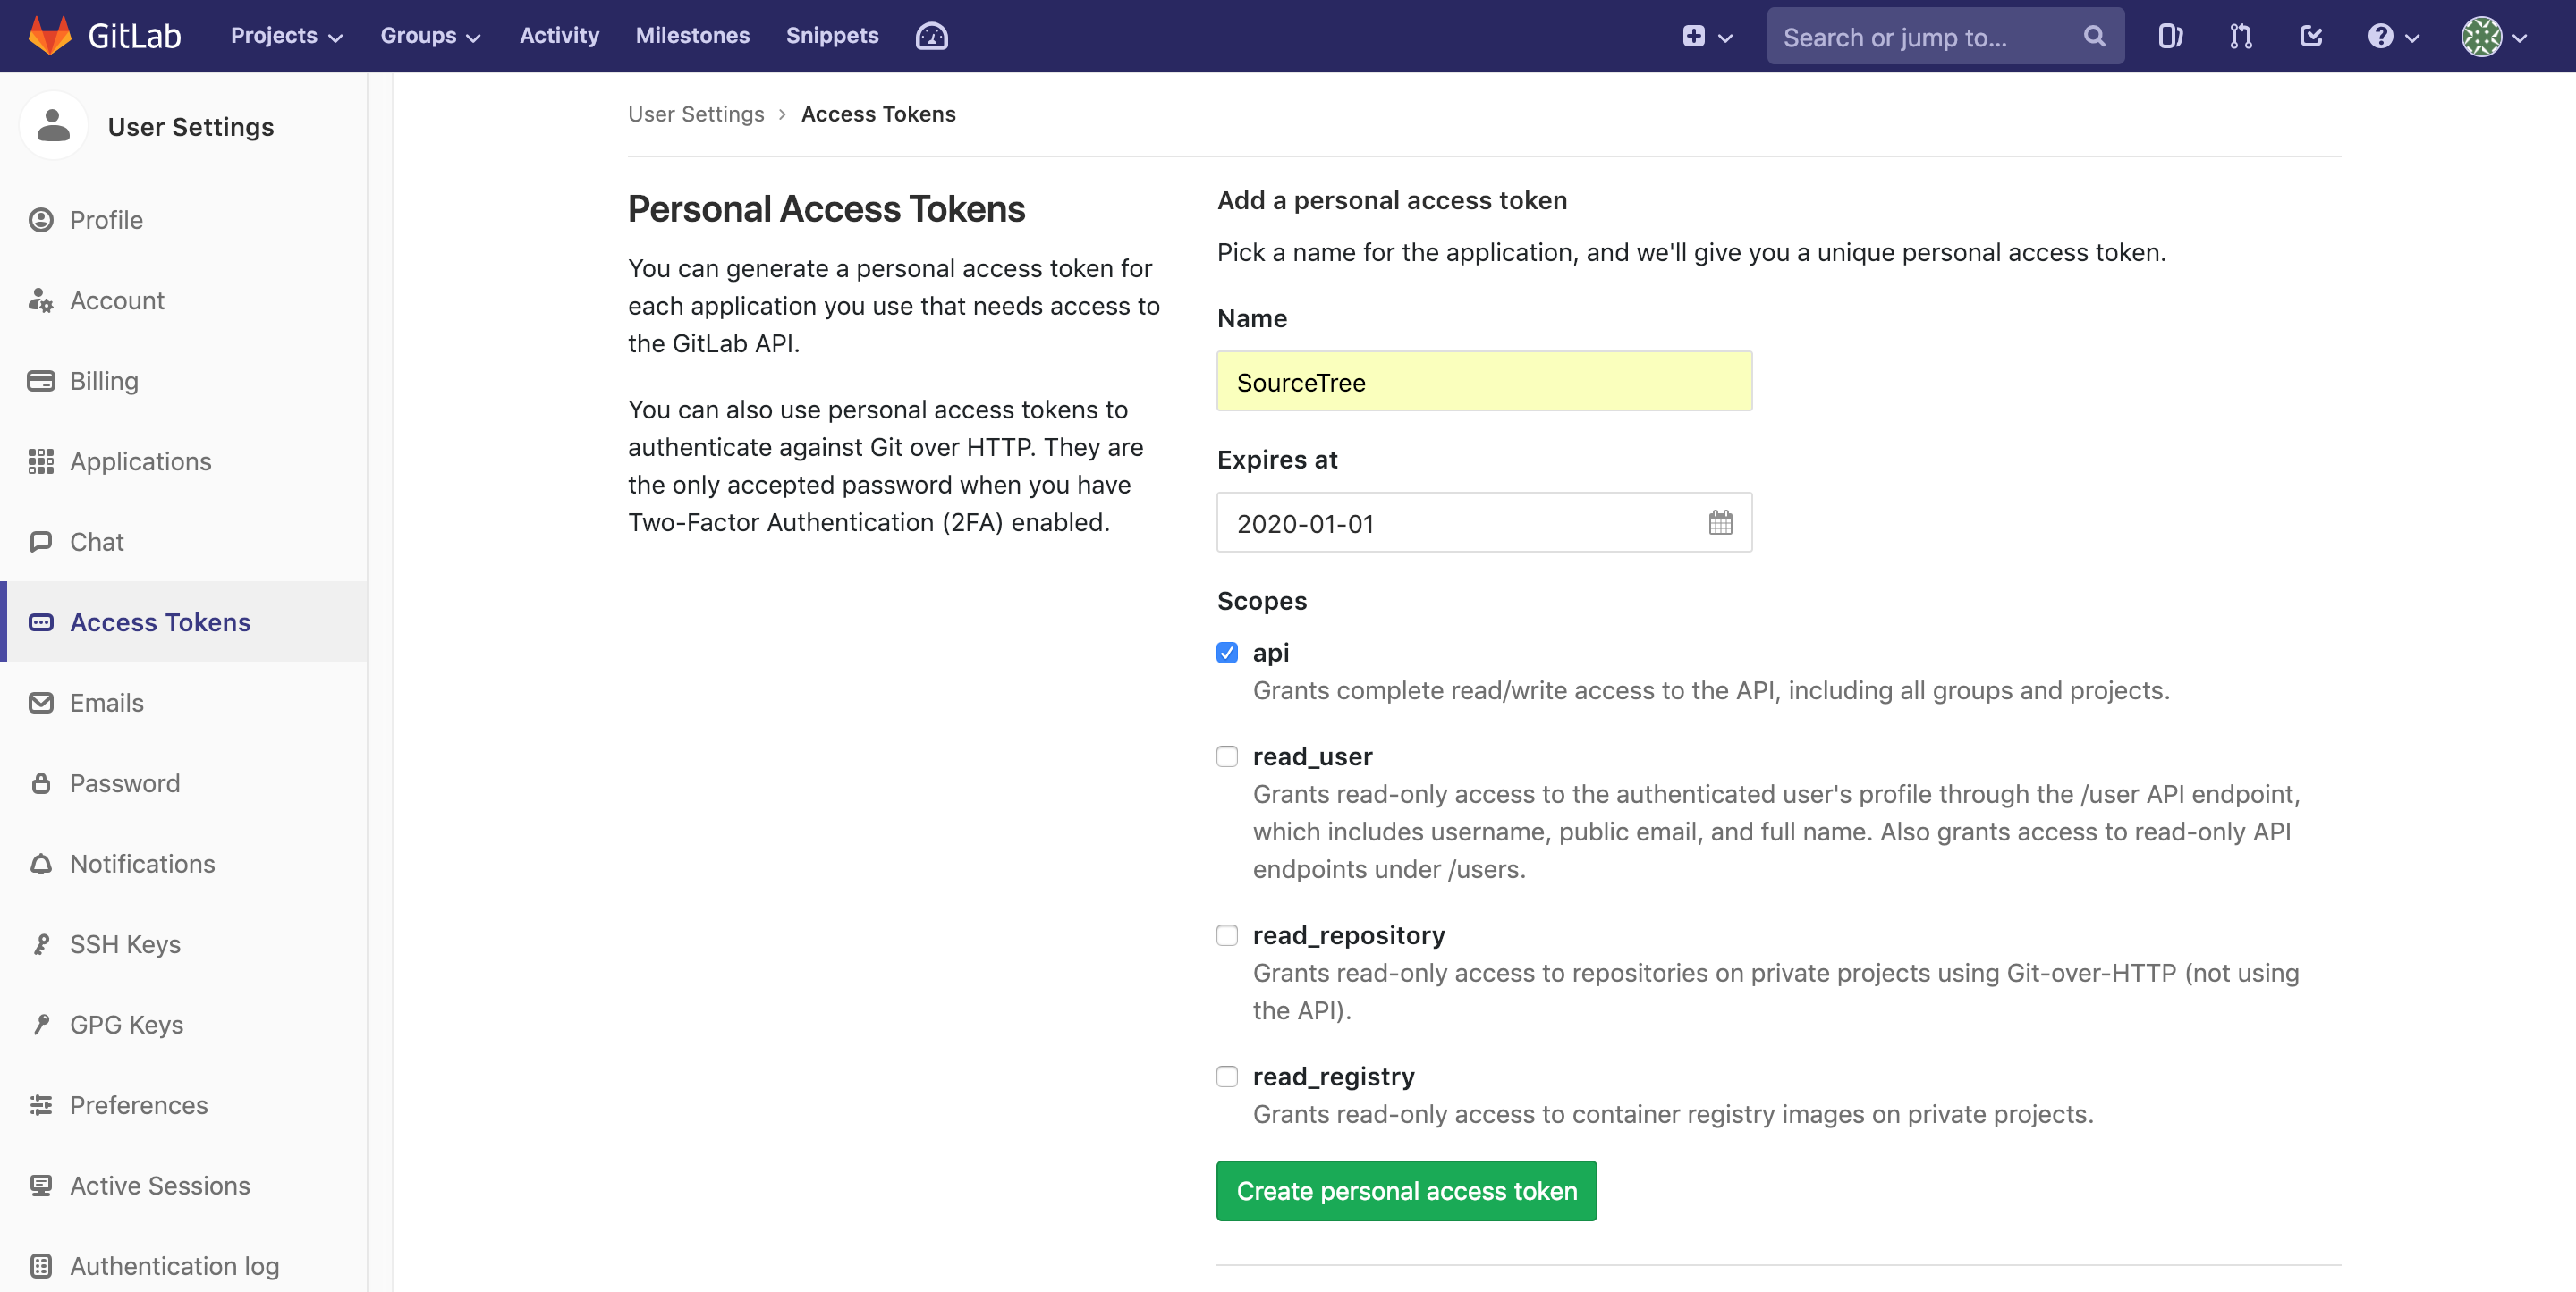 screencapture-gitlab-profile-personal_access_tokens-2019-01-16-05_45_33.png